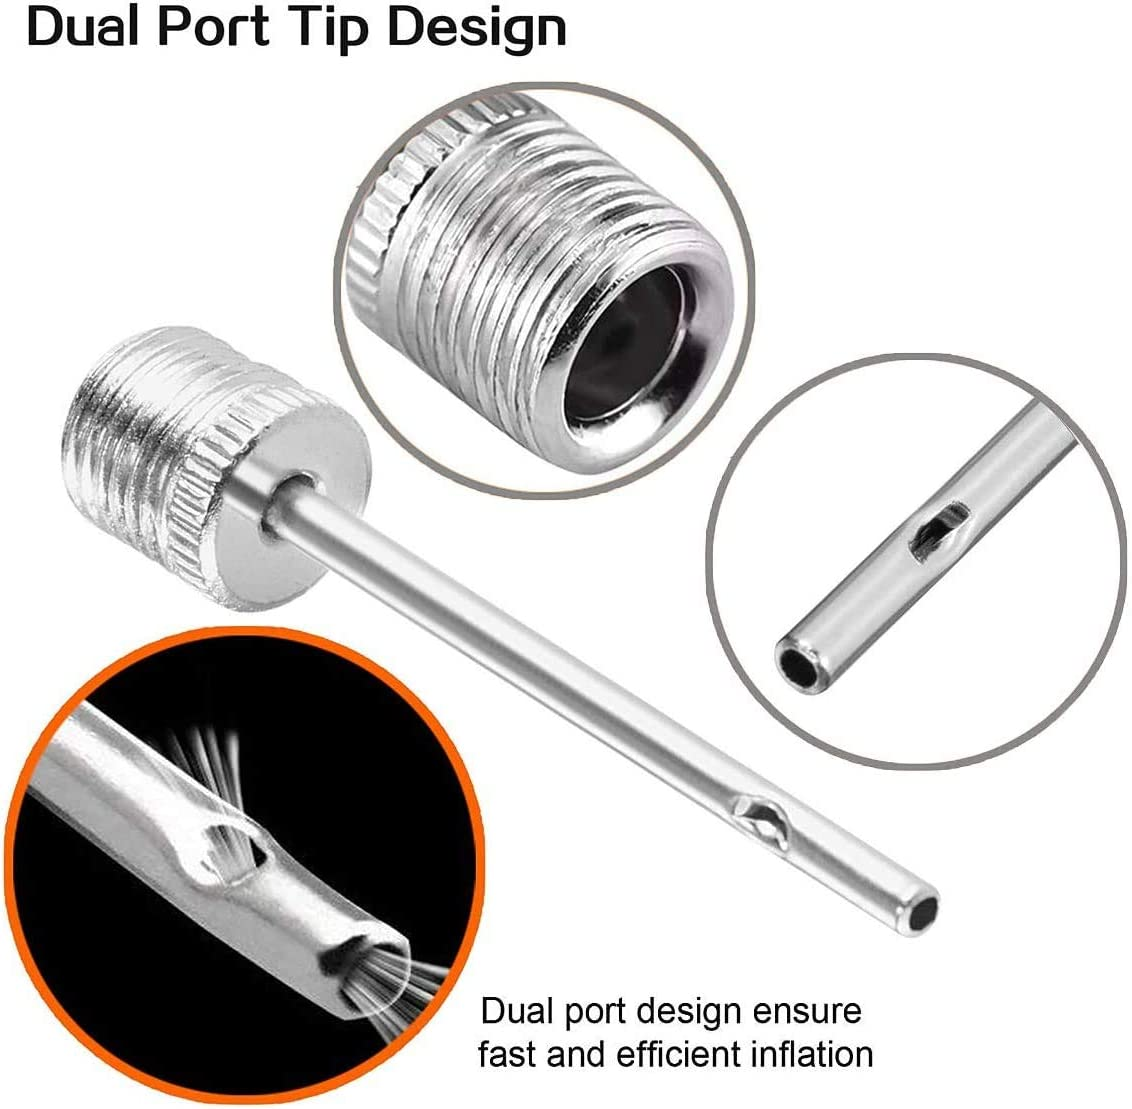 1PCS Steel Sports Ball Pump Needle Air Inflation Needle Pin Nozzle NEW